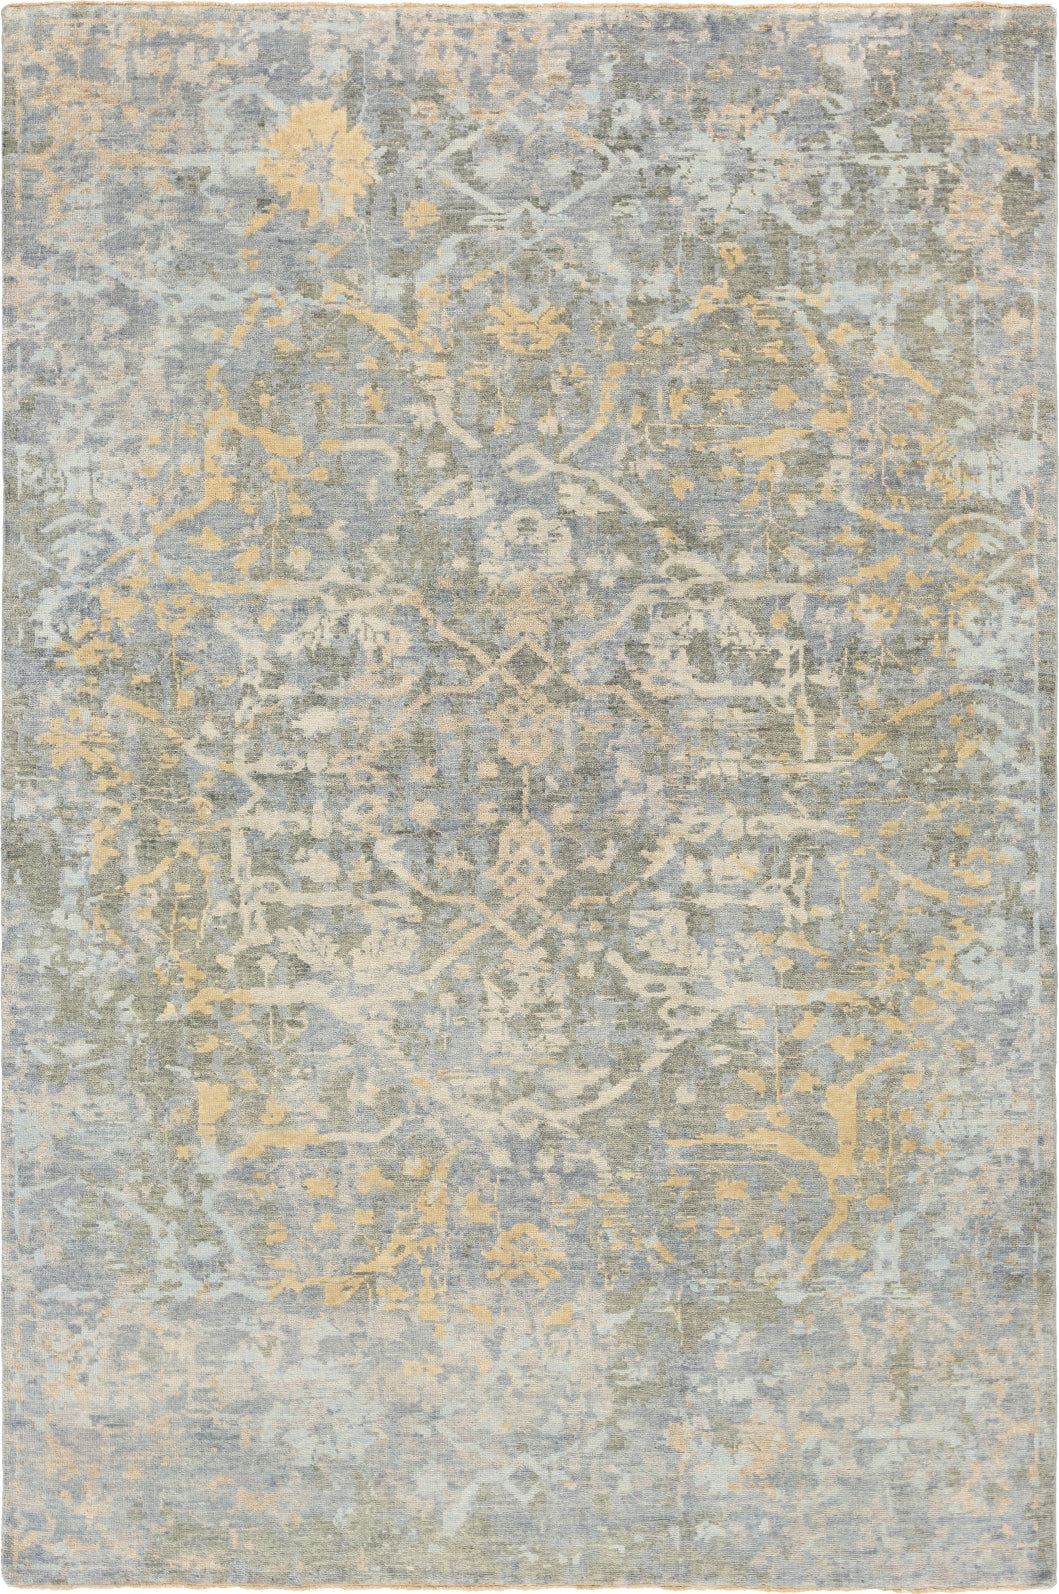 Surya Normandy NOY-8005 Area Rug main image